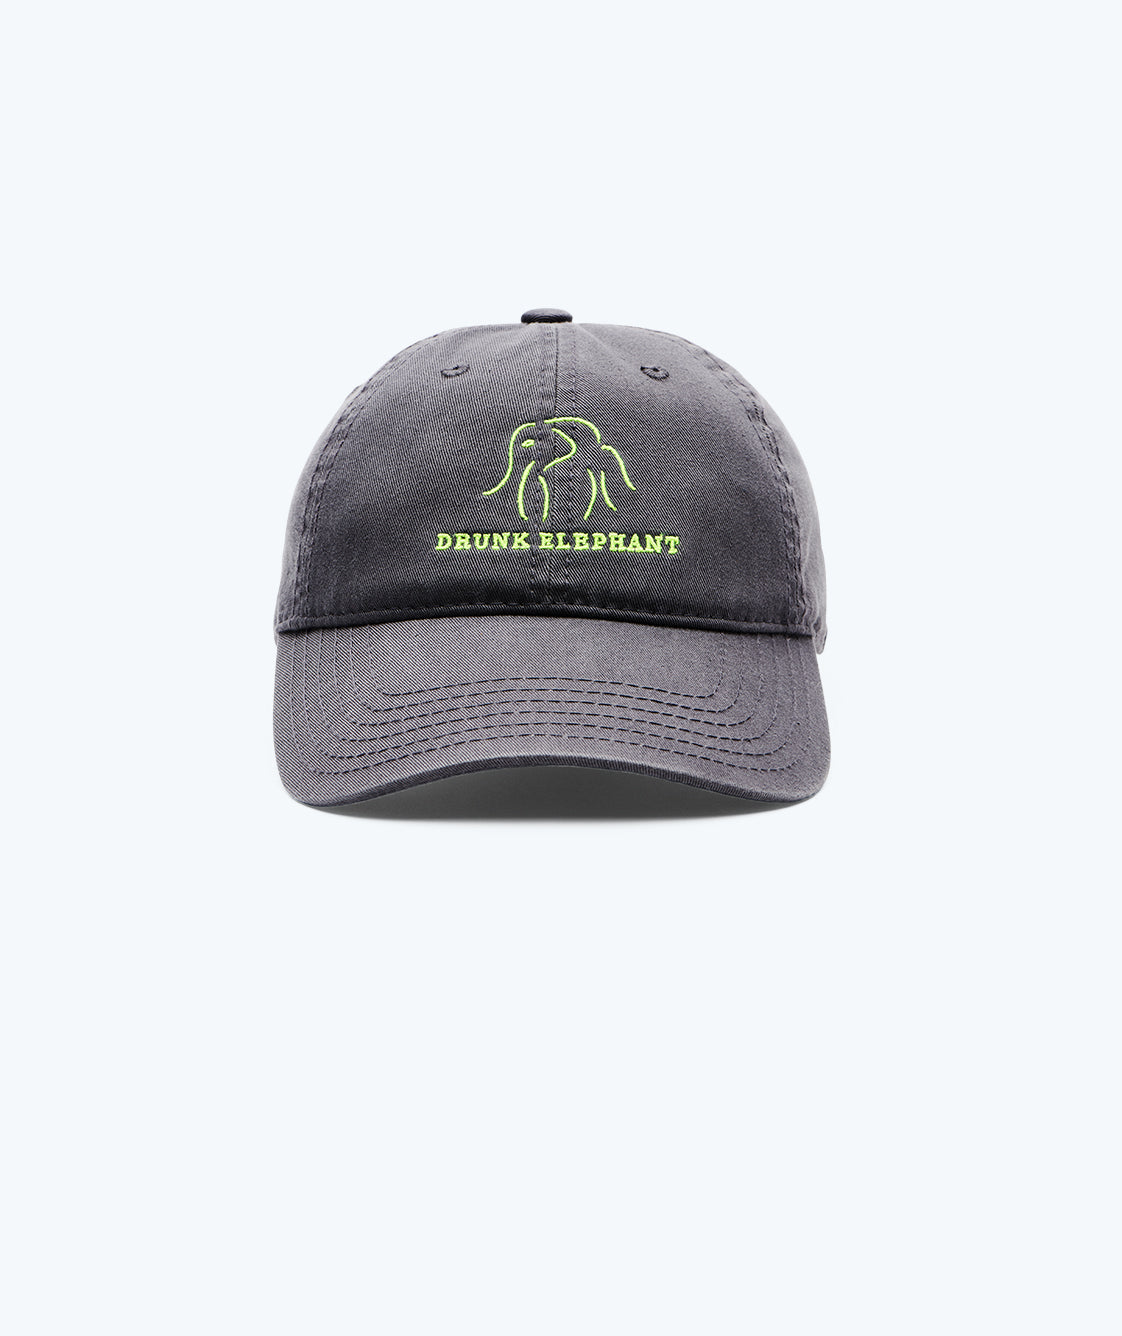 The Drunk Life Hat